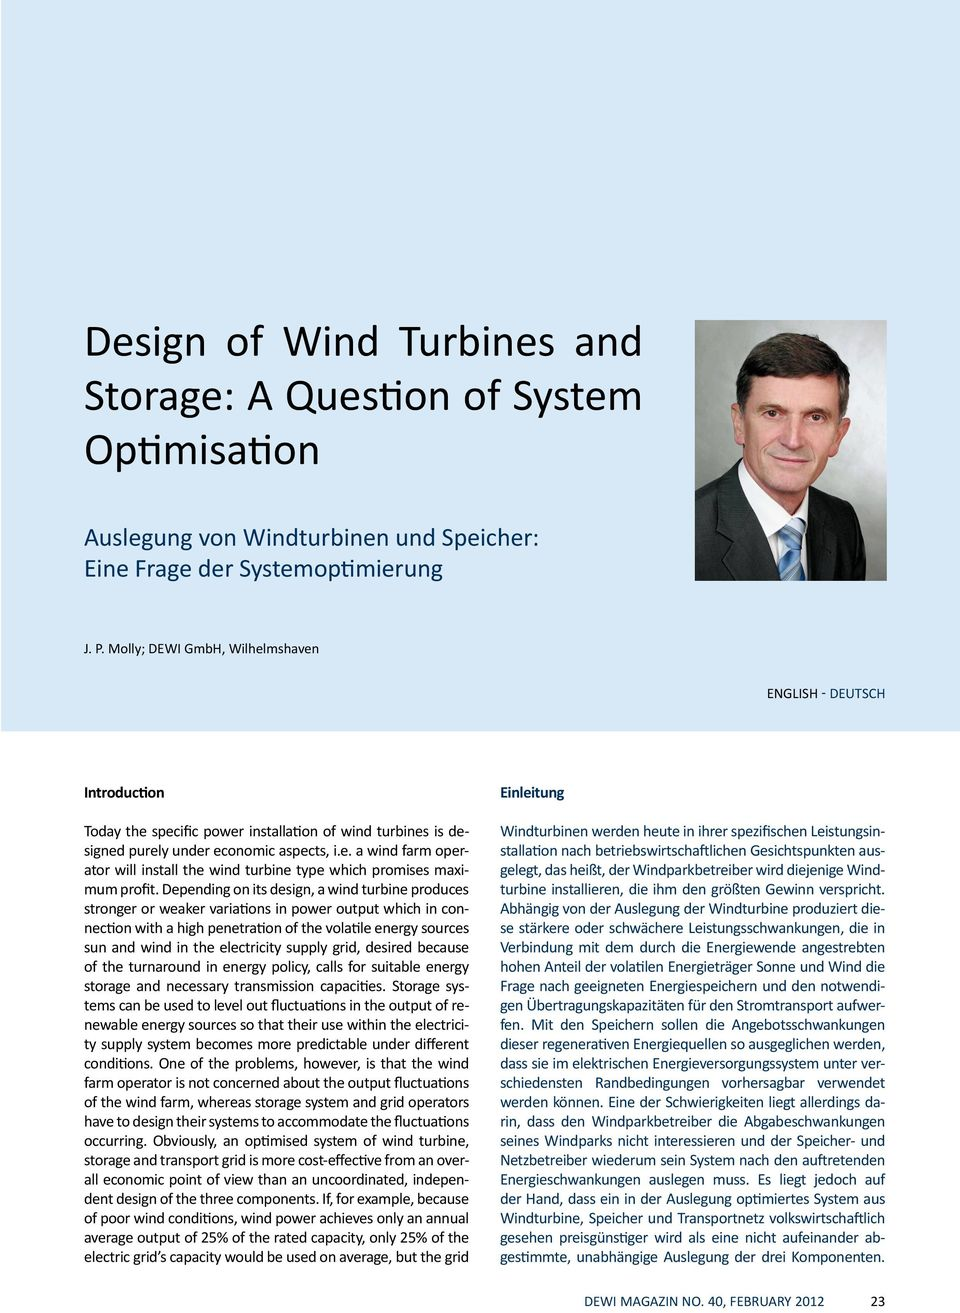 Depending on its design, a wind turbine produces stronger or weaker variations in power output which in connection with a high penetration of the volatile energy sources sun and wind in the